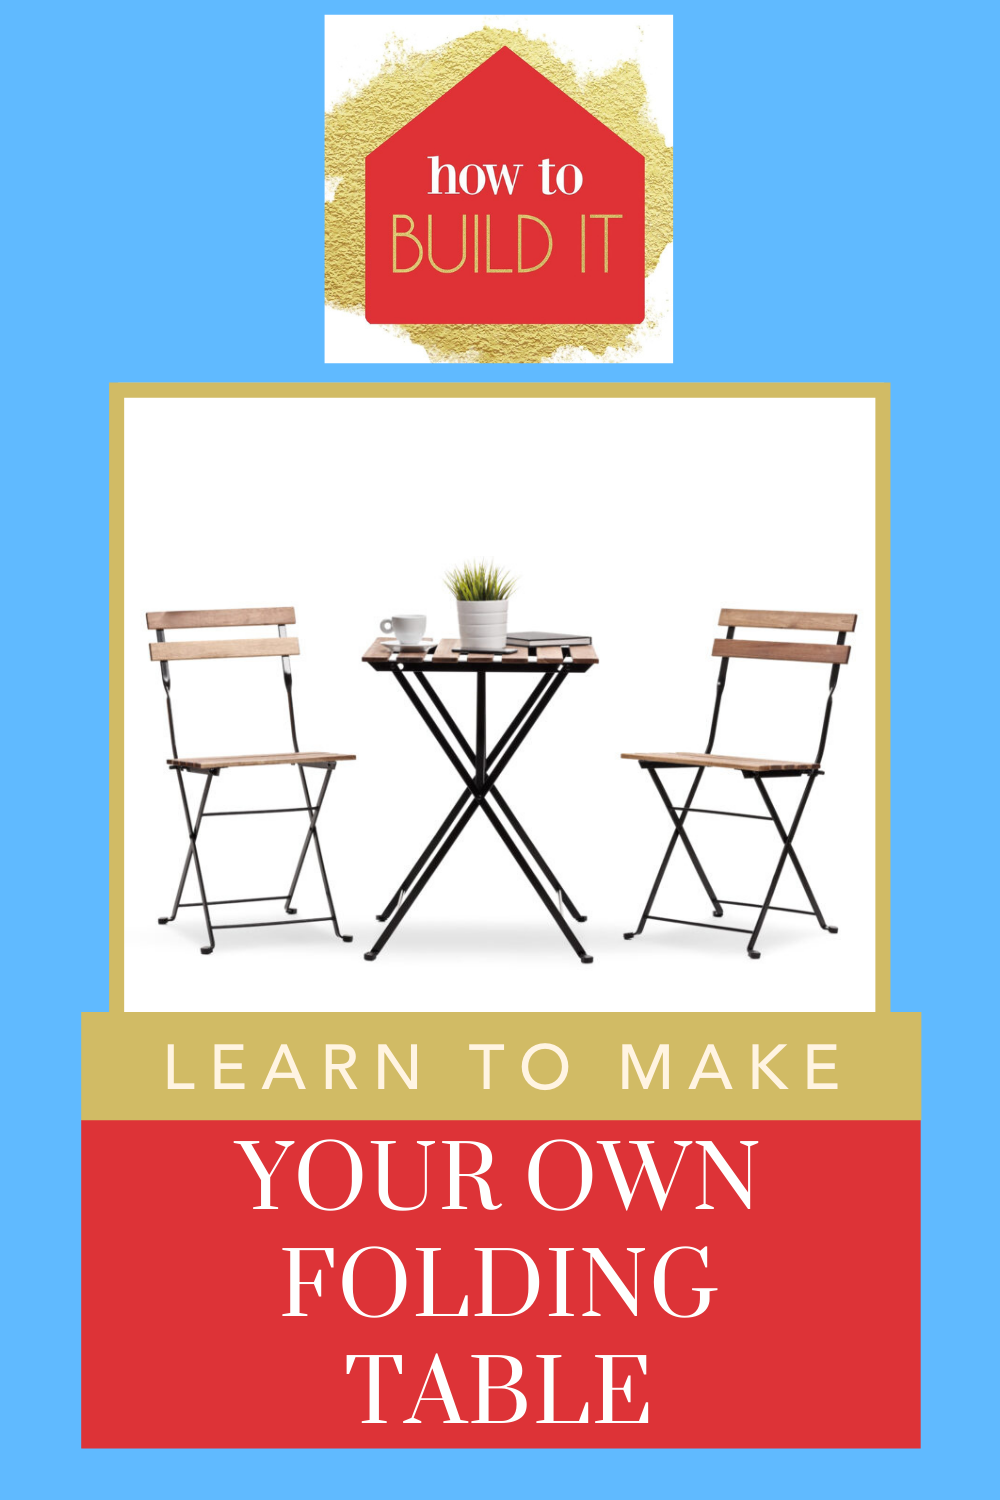 Howtobuildit.com will make you into a certified handyman! Learn how to make custom furniture to spice up your home! Find out how to save money and make your own folding table!